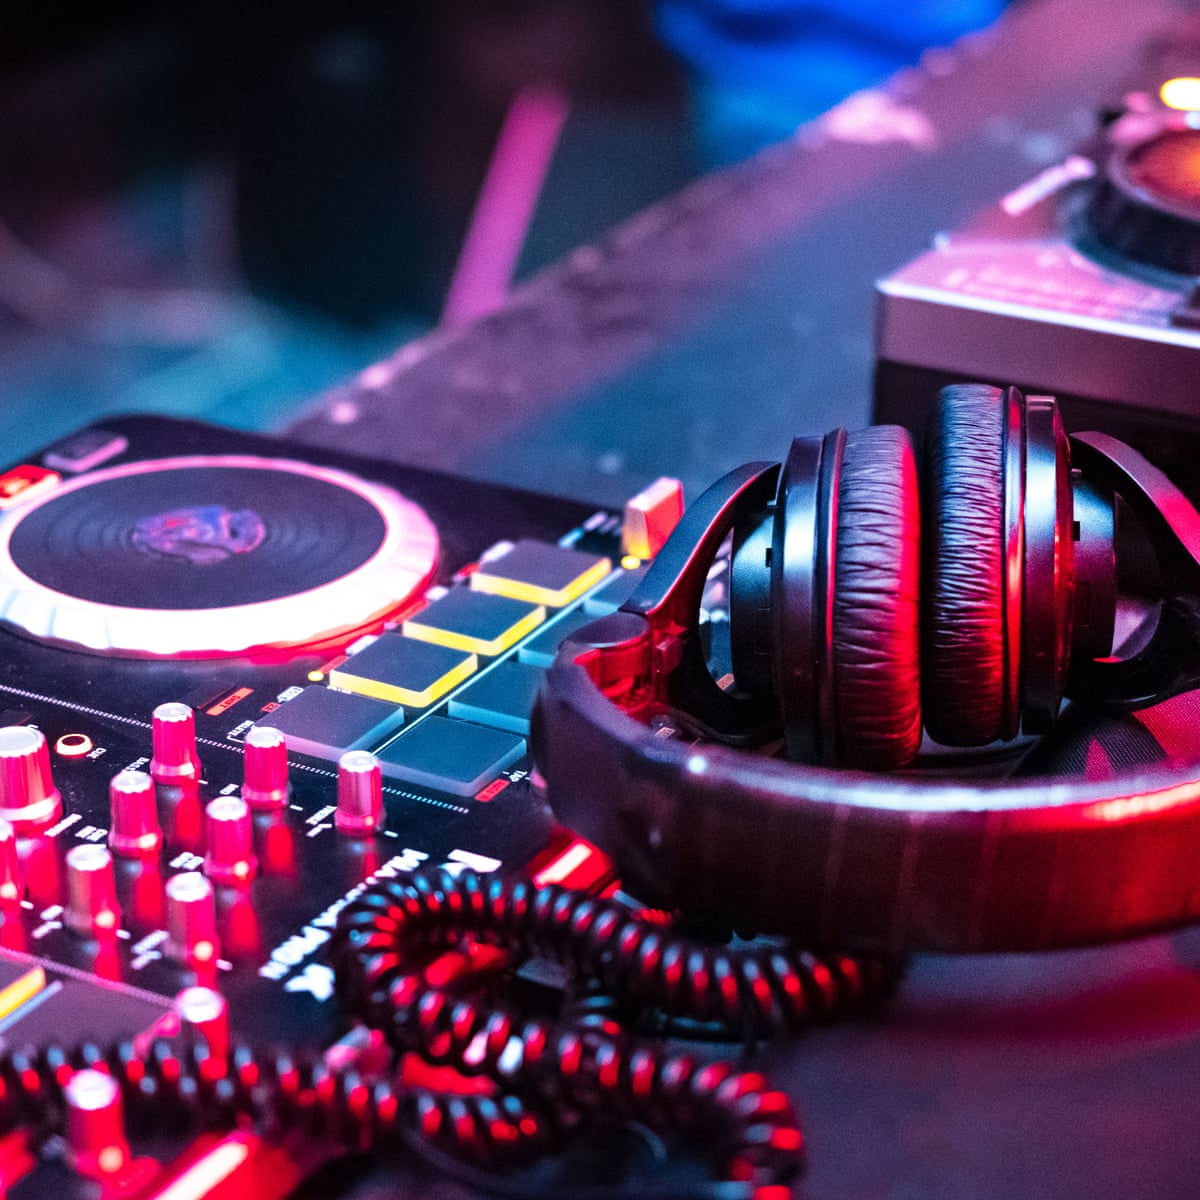 The thud, thud, thud of techno music leaves no space for bad thoughts |  Health & wellbeing | The Guardian